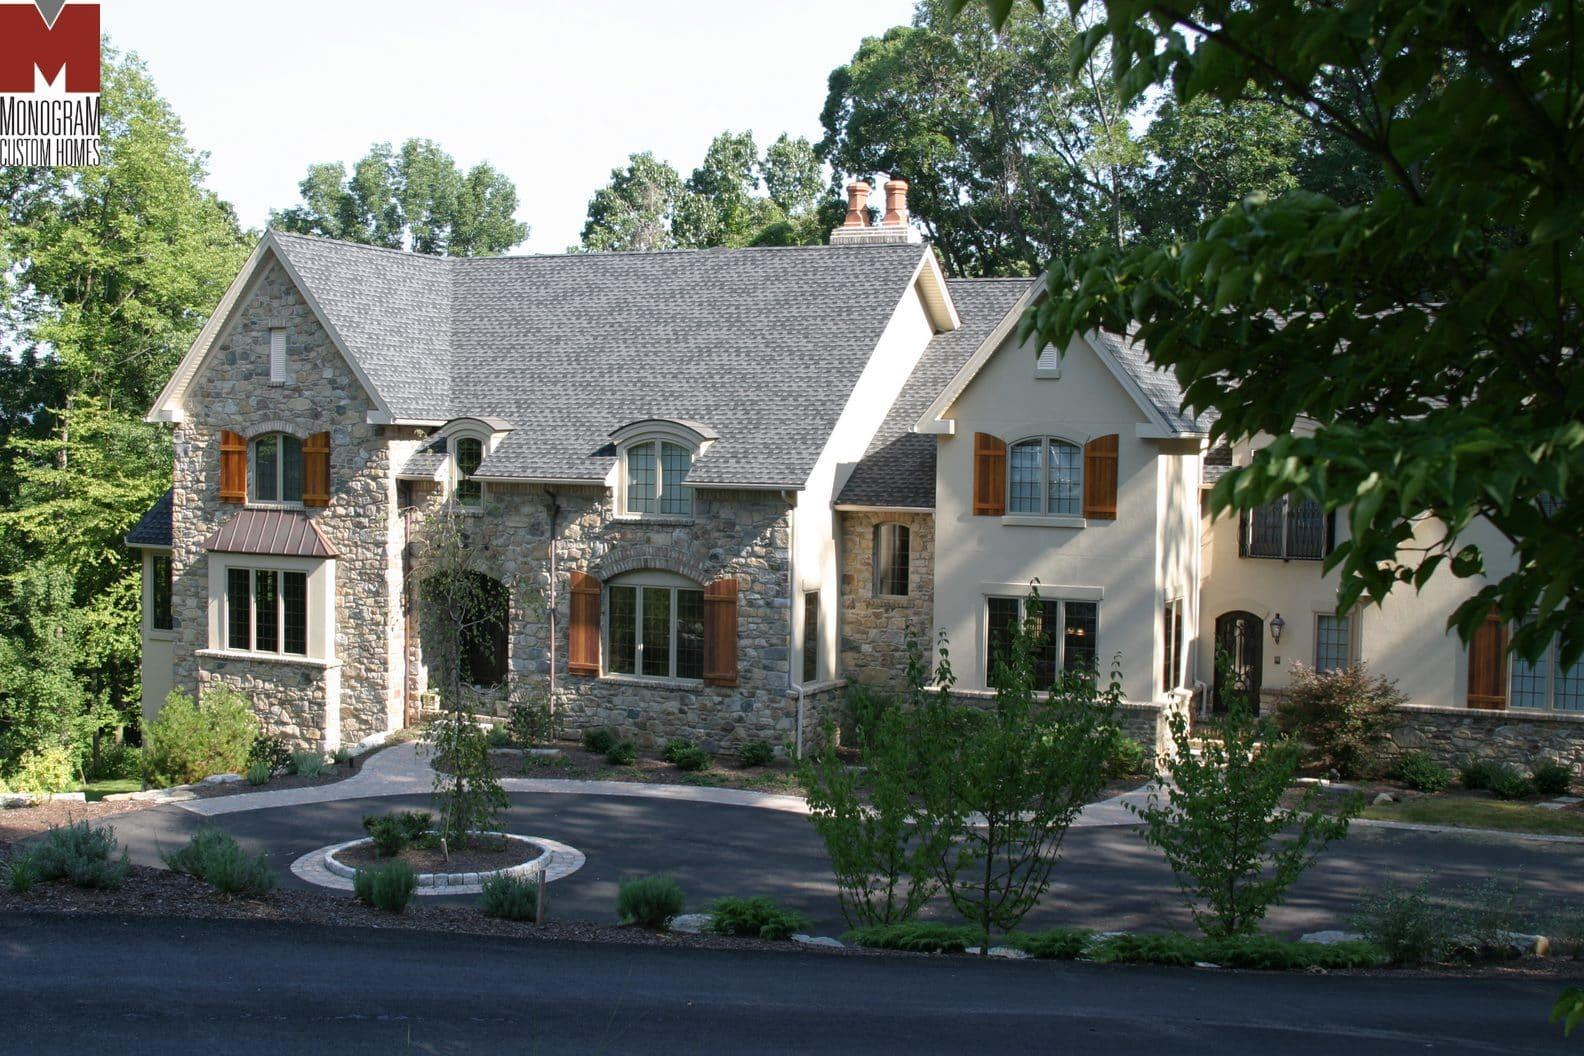 Award winning custom home builder in lehigh valley pa for Monogram homes